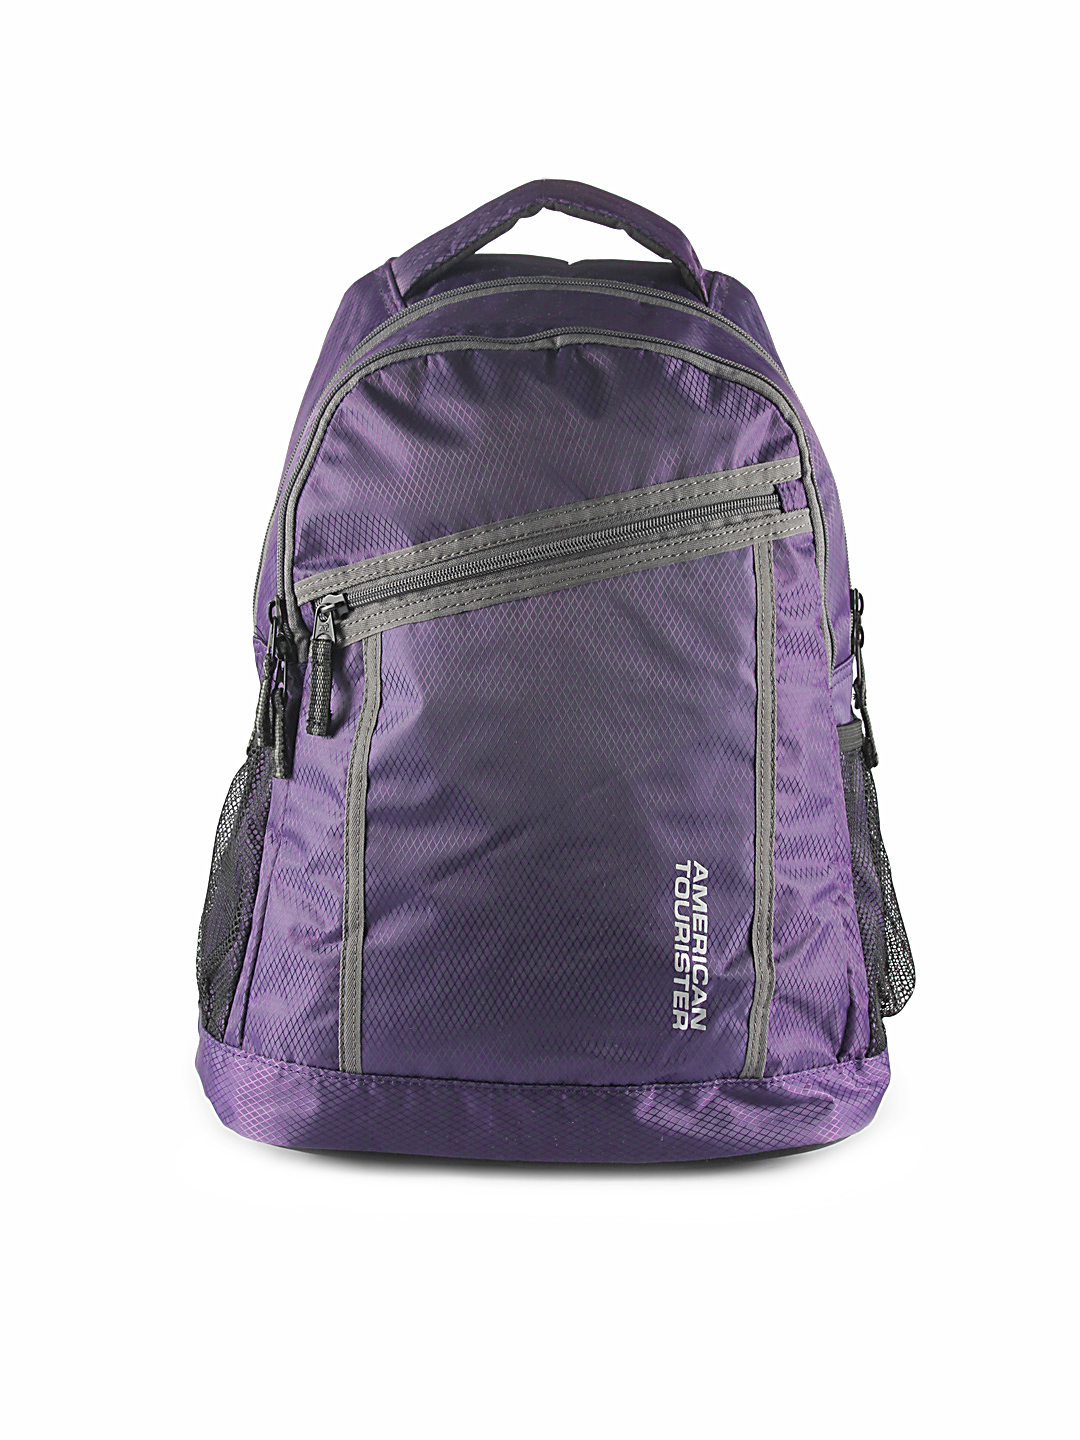 American Tourister Unisex Casual Purple Backpack